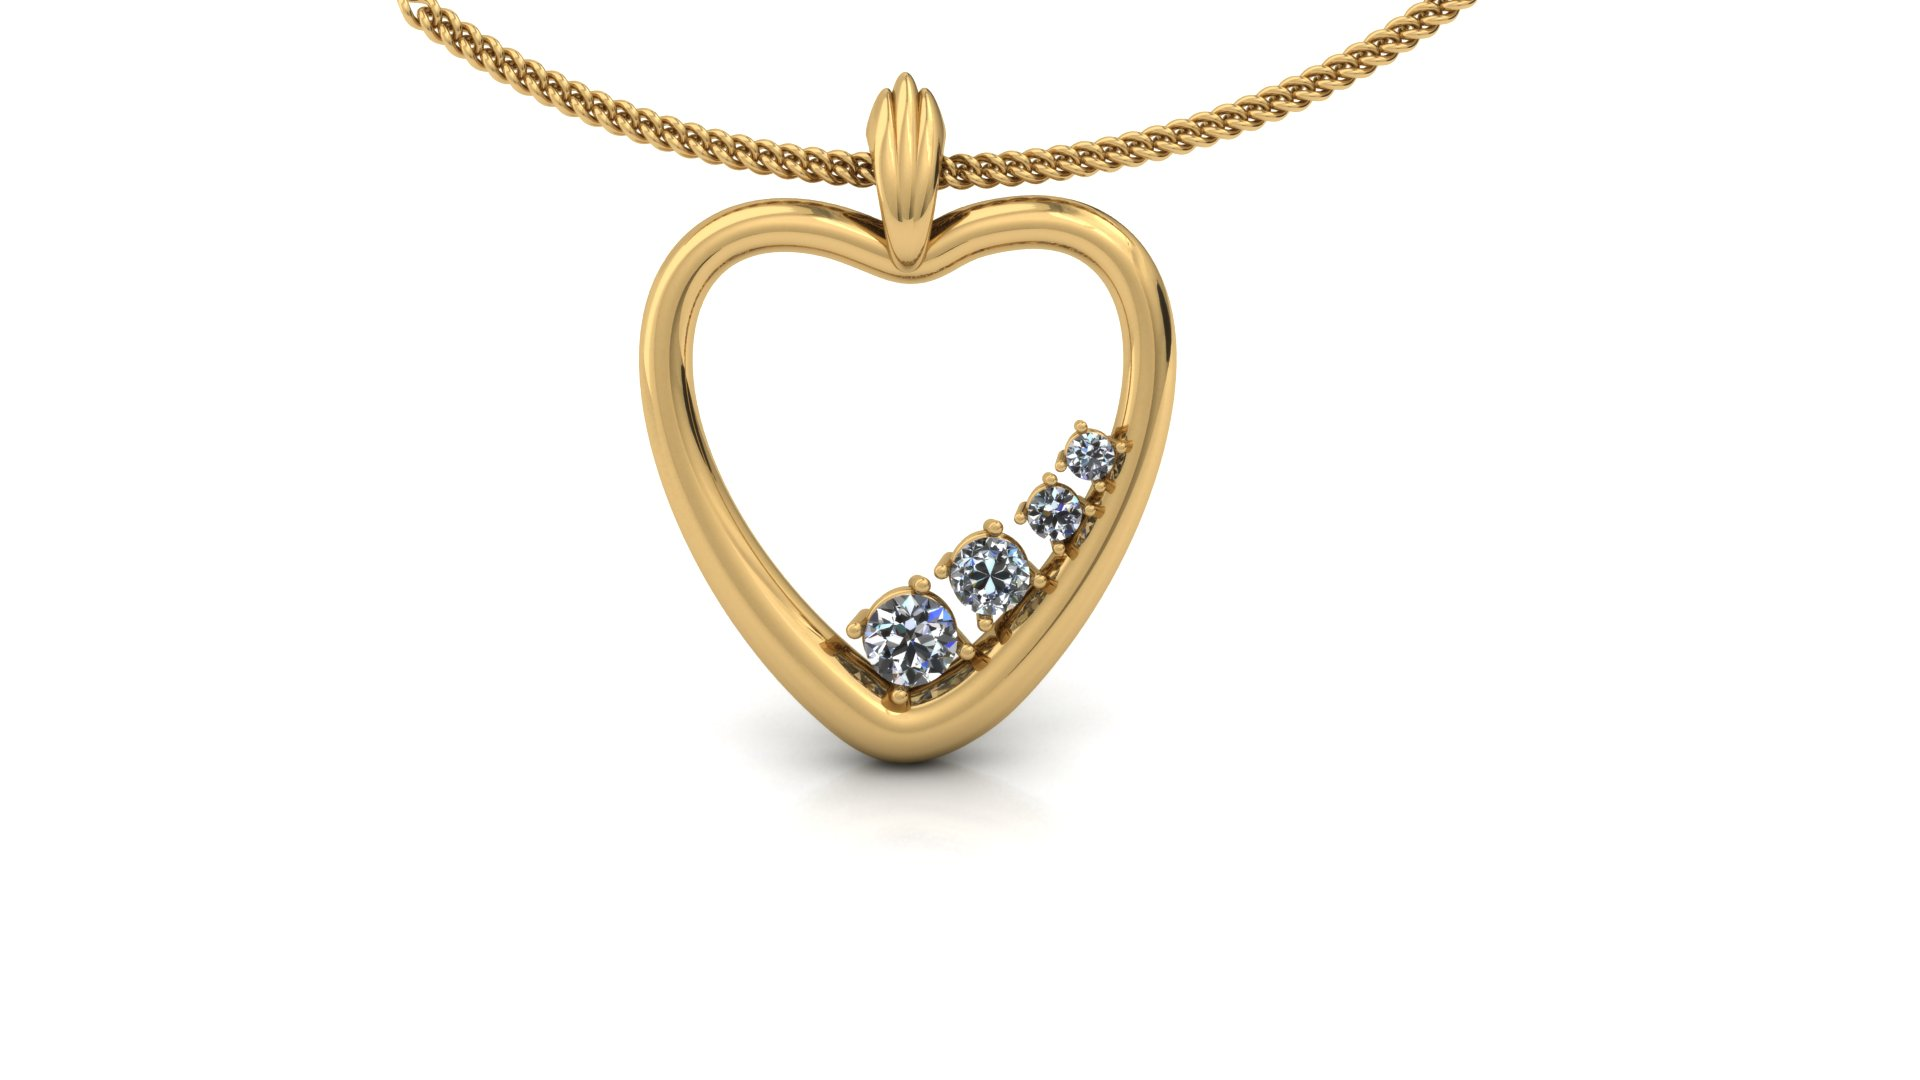 DIAMOND HEART SHAPED PENDANT